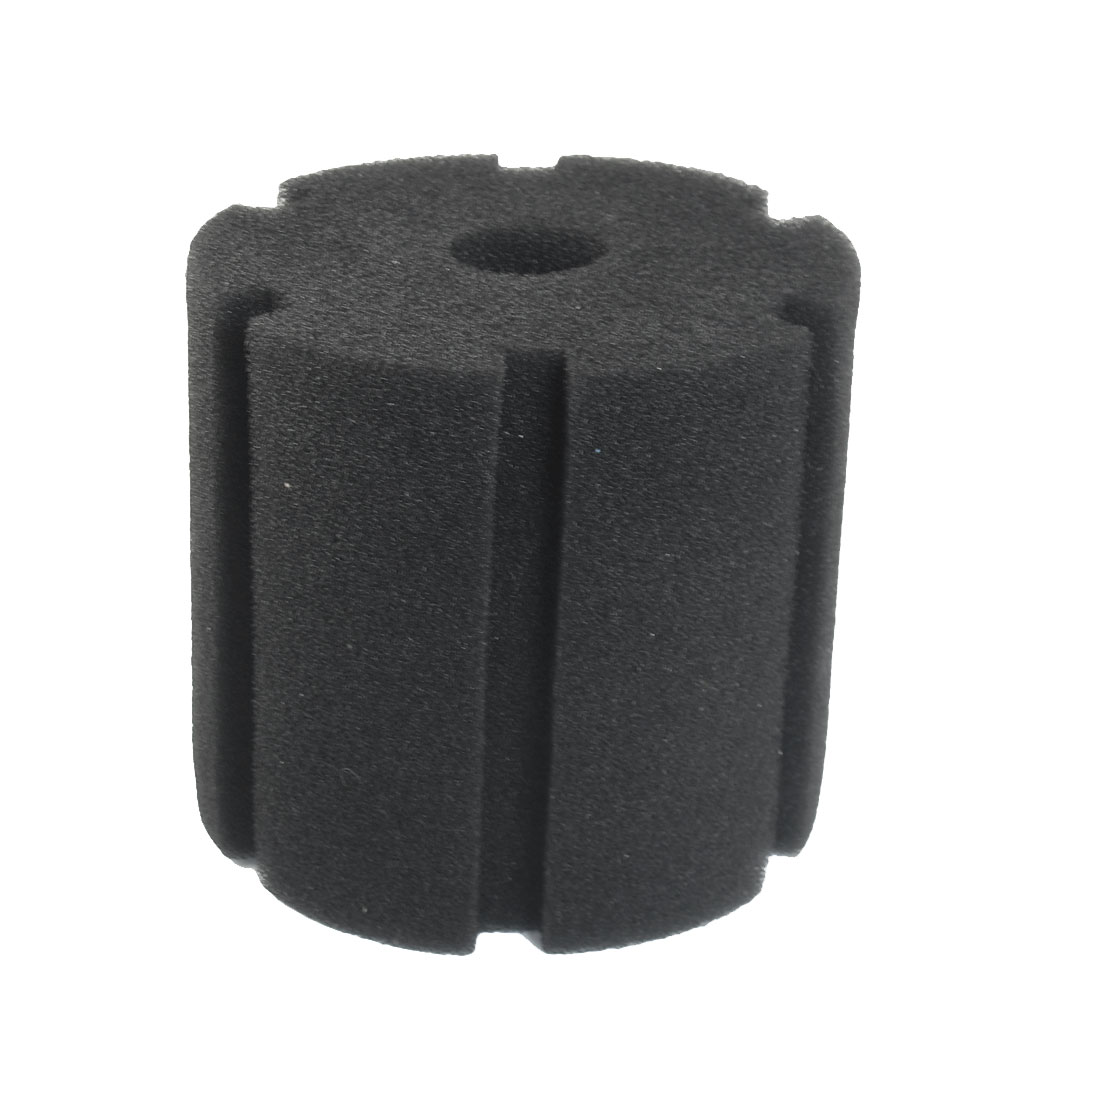 "Black 4.5"" Height Cylinder Sponge for Aquarium Water Filter"